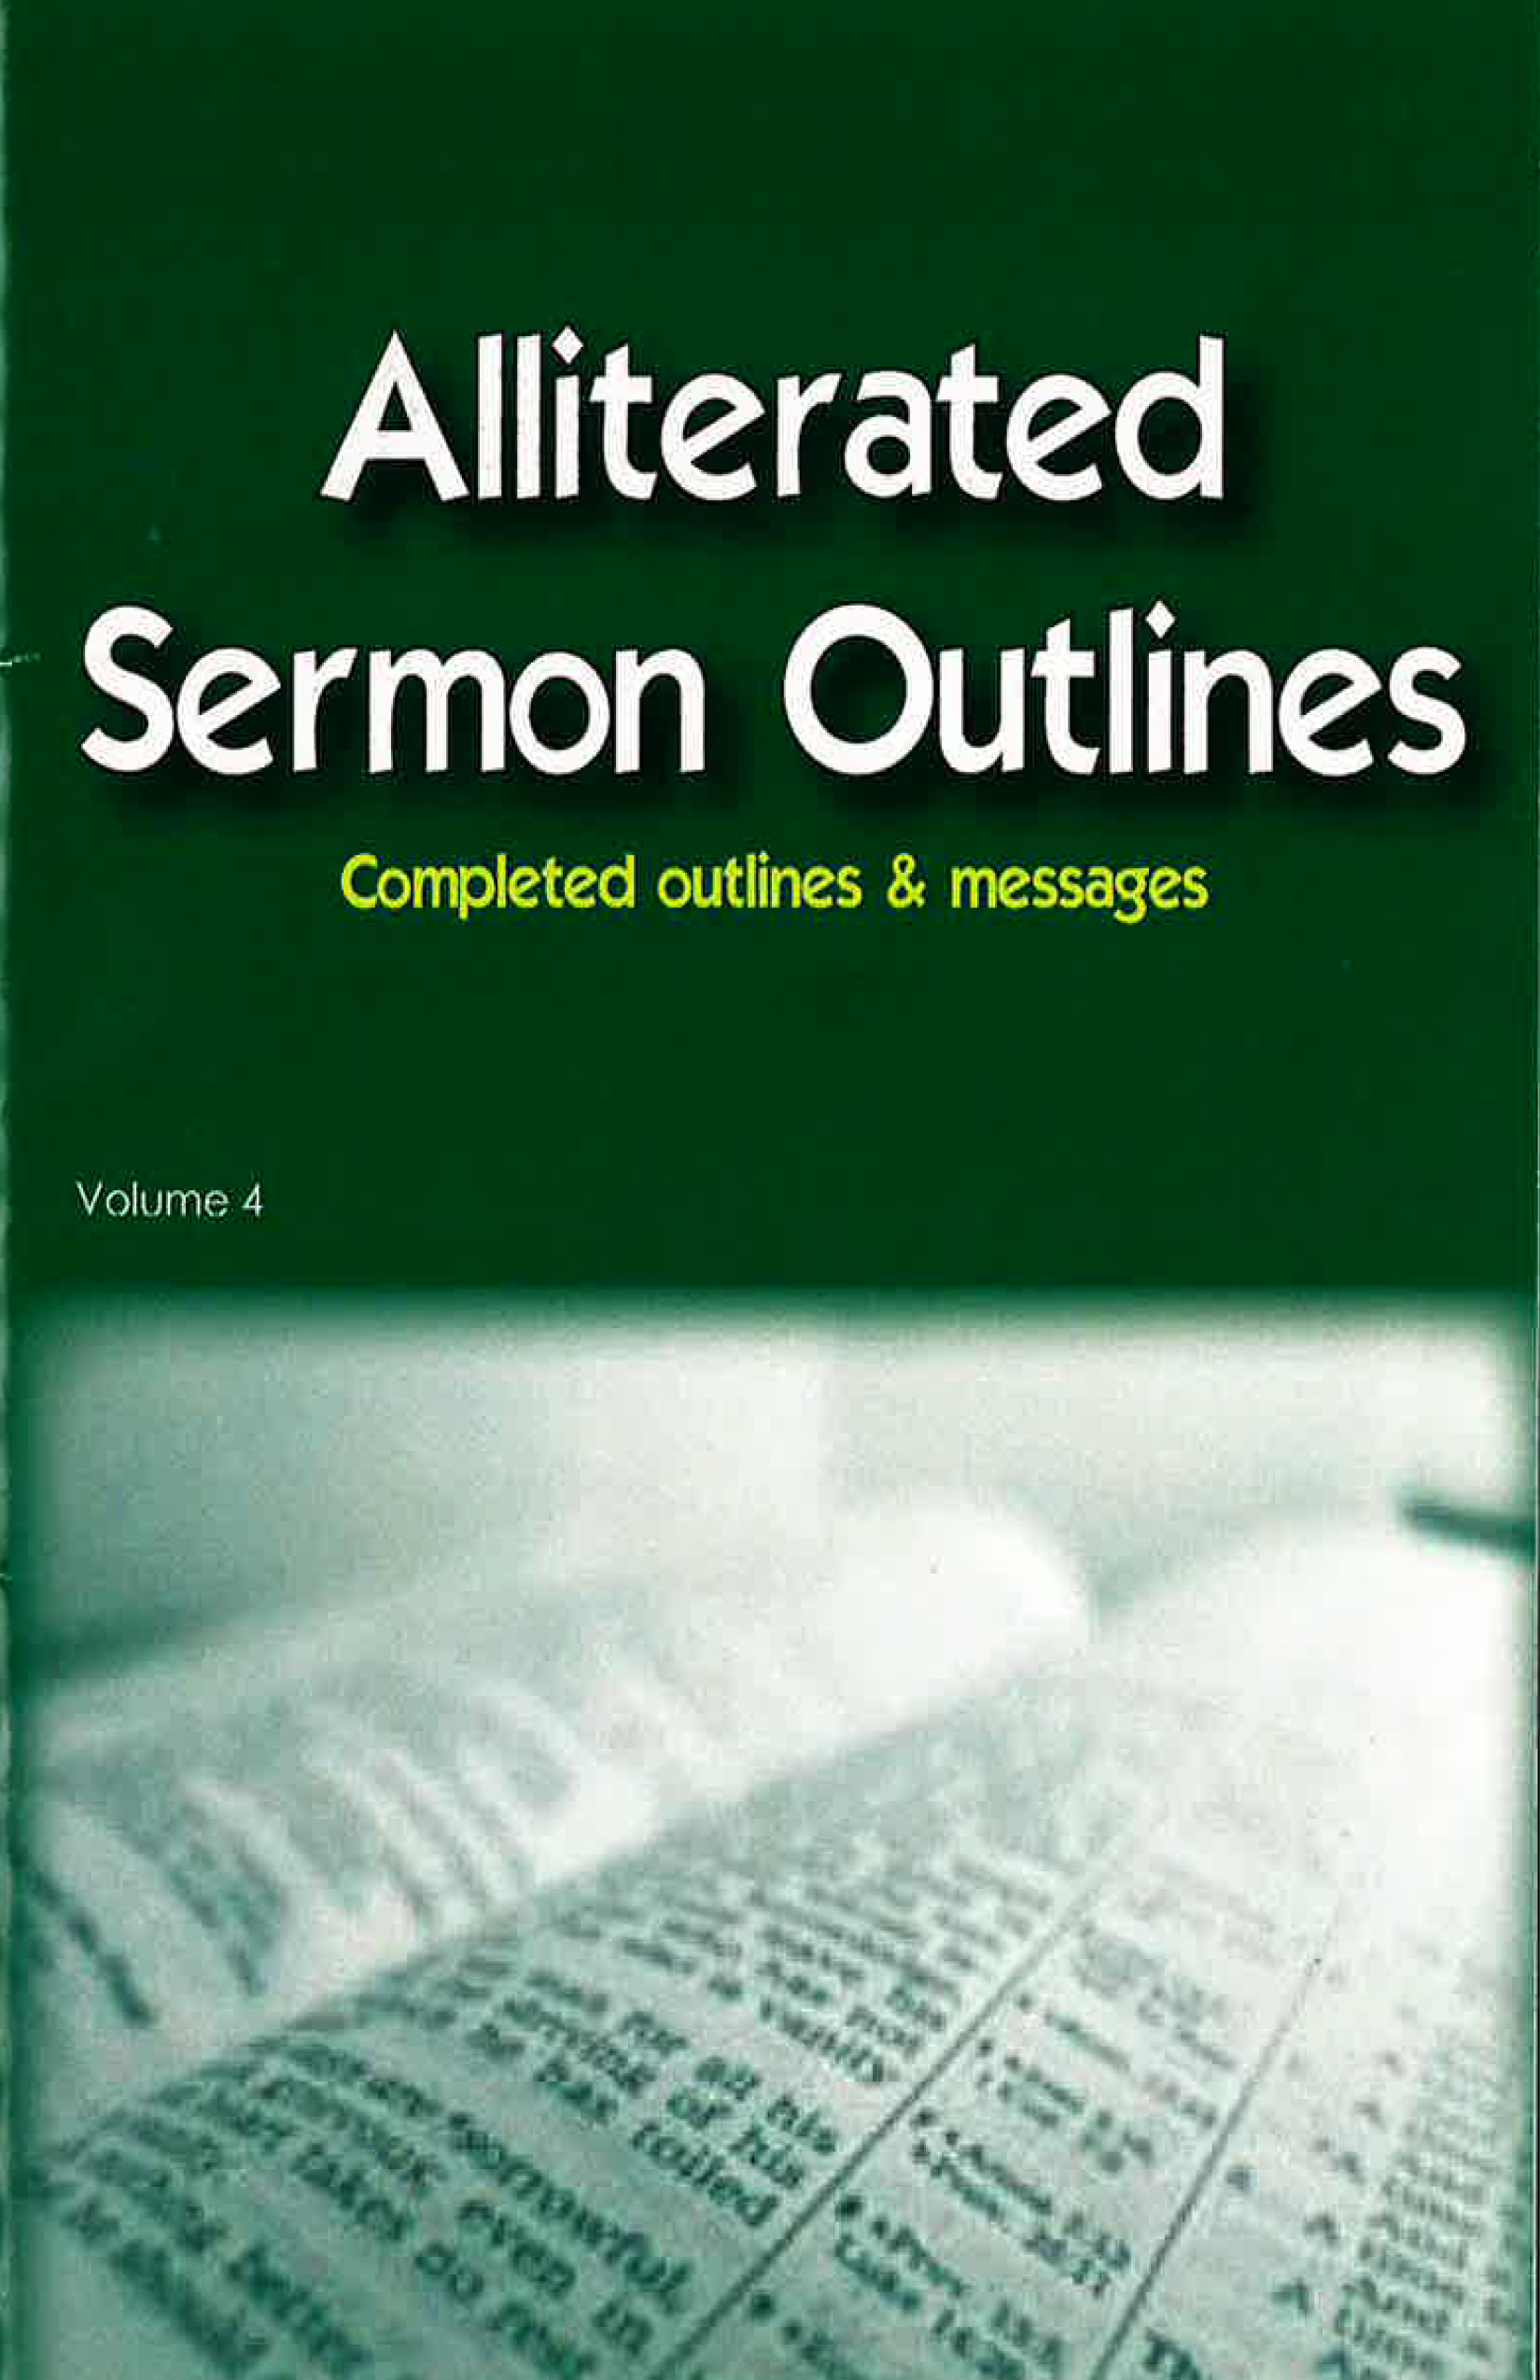 Alliterated Sermons - Volume 4